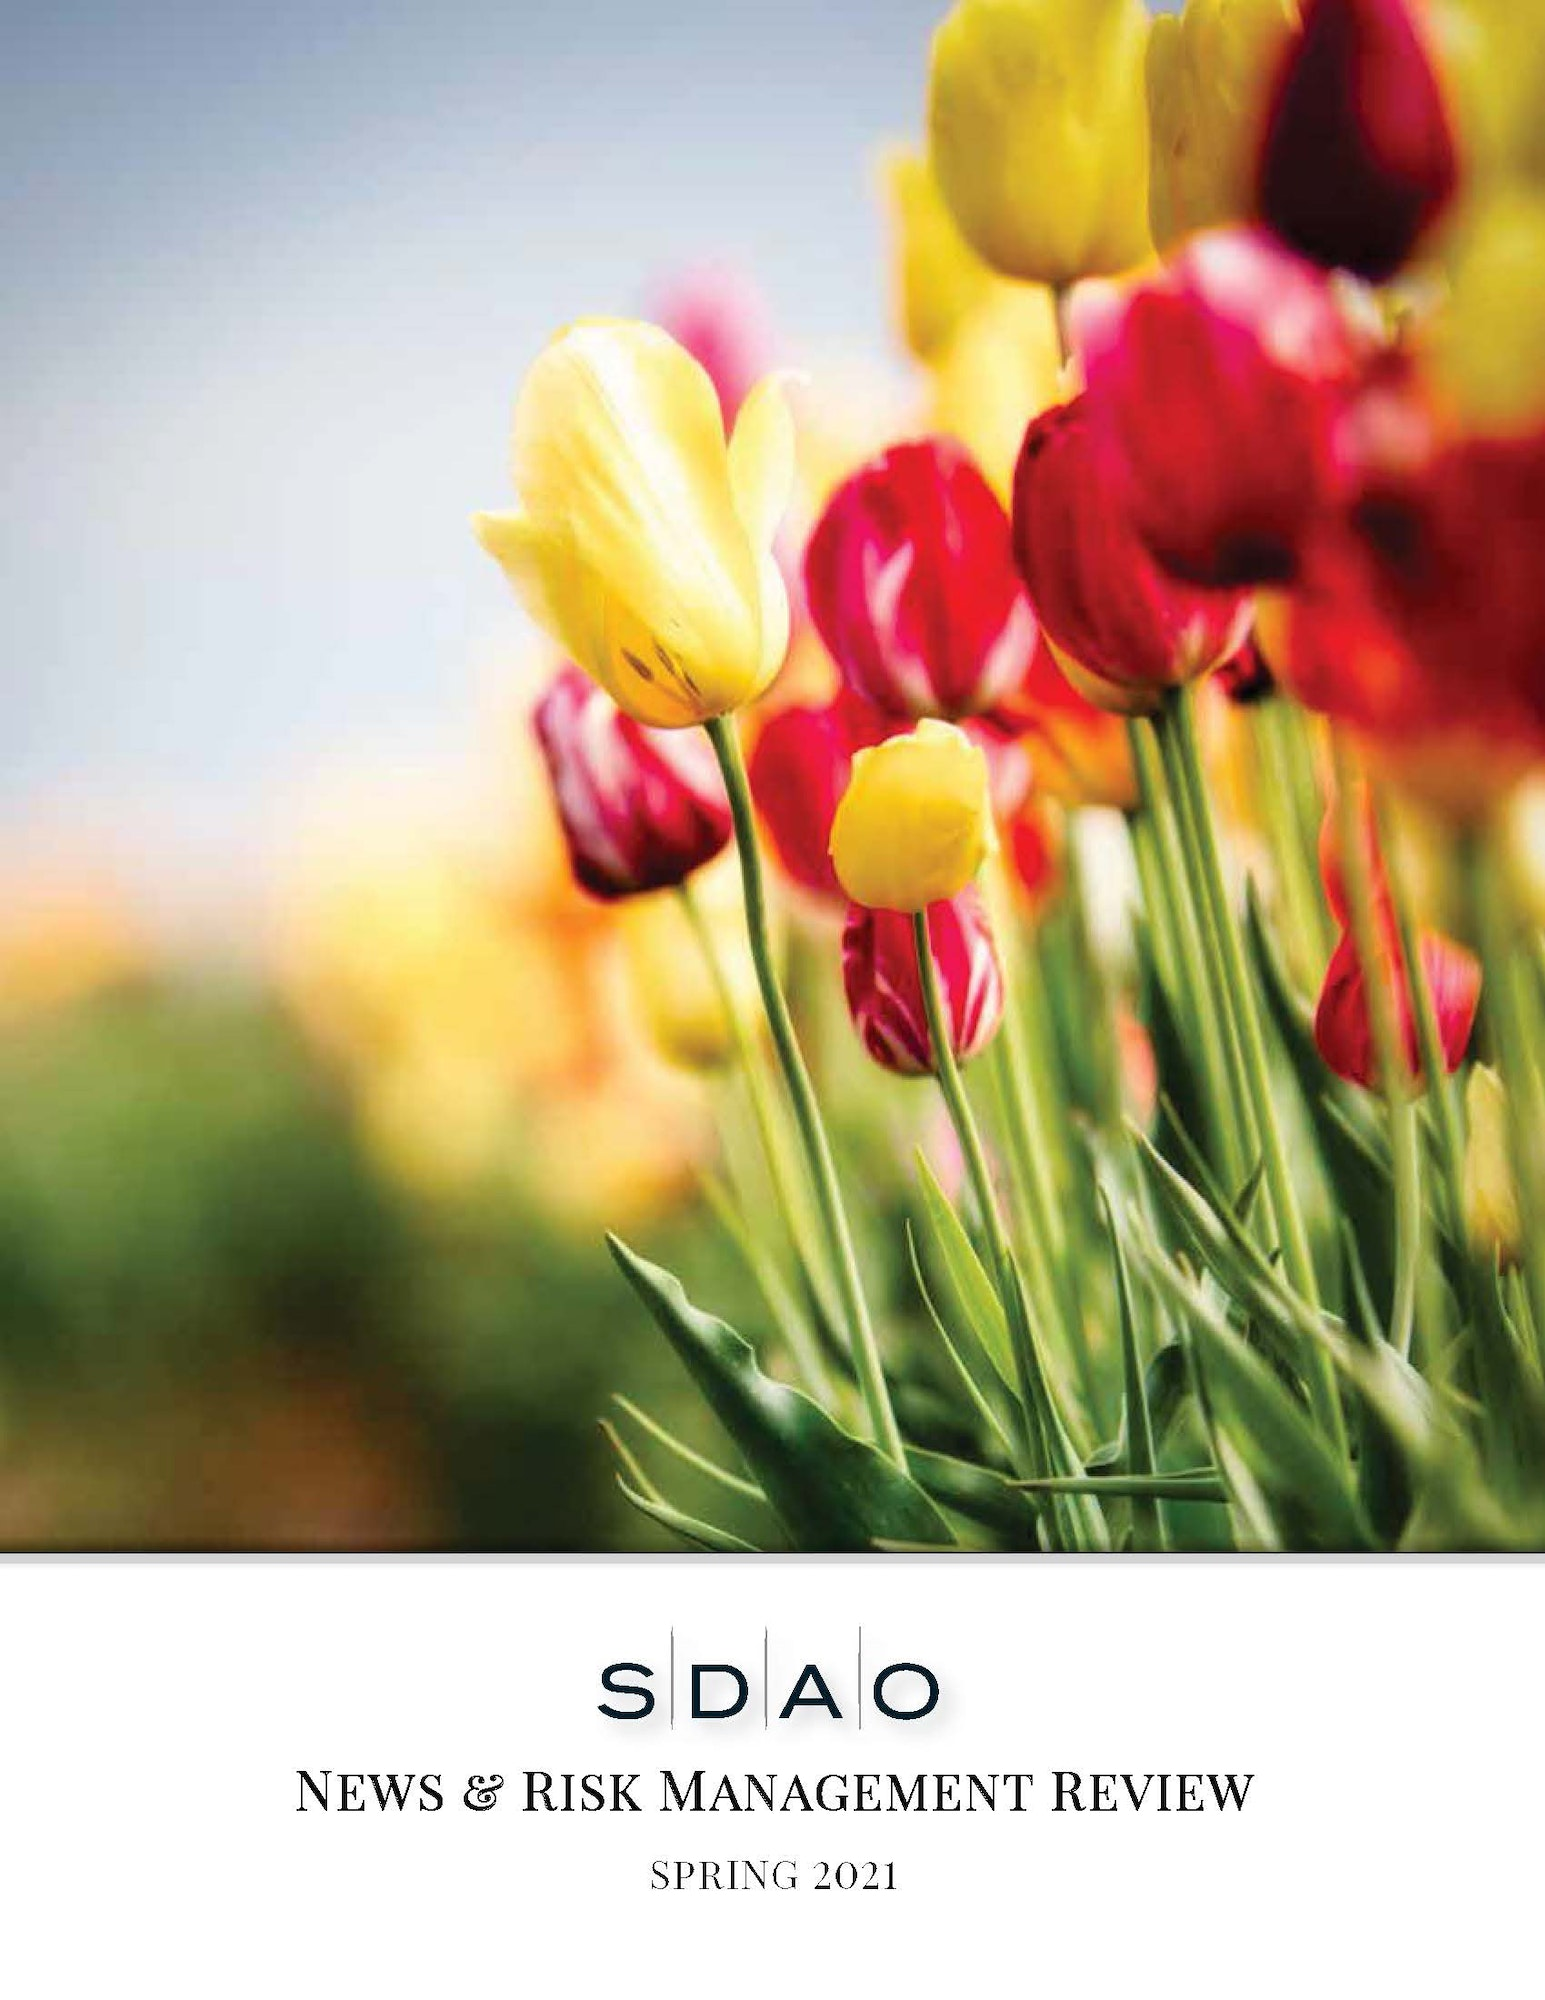 May contain: plant, flower, blossom, and tulip; Text: SDAO News & Risk Management Review, Spring 2021